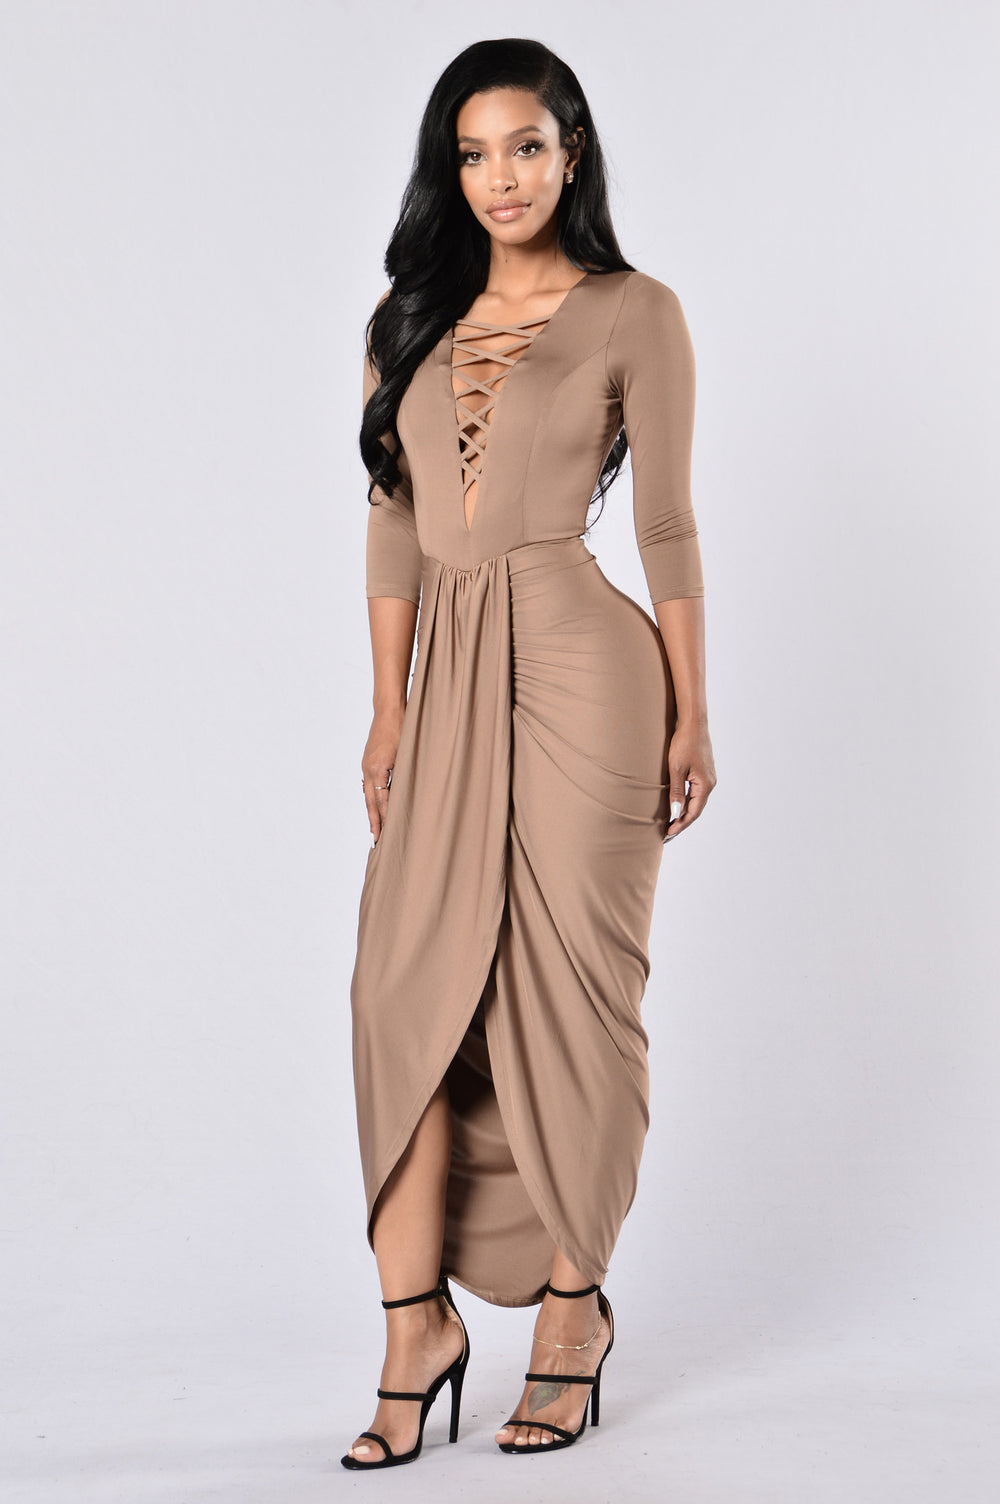 Free Like A Bird Dress - Mocha